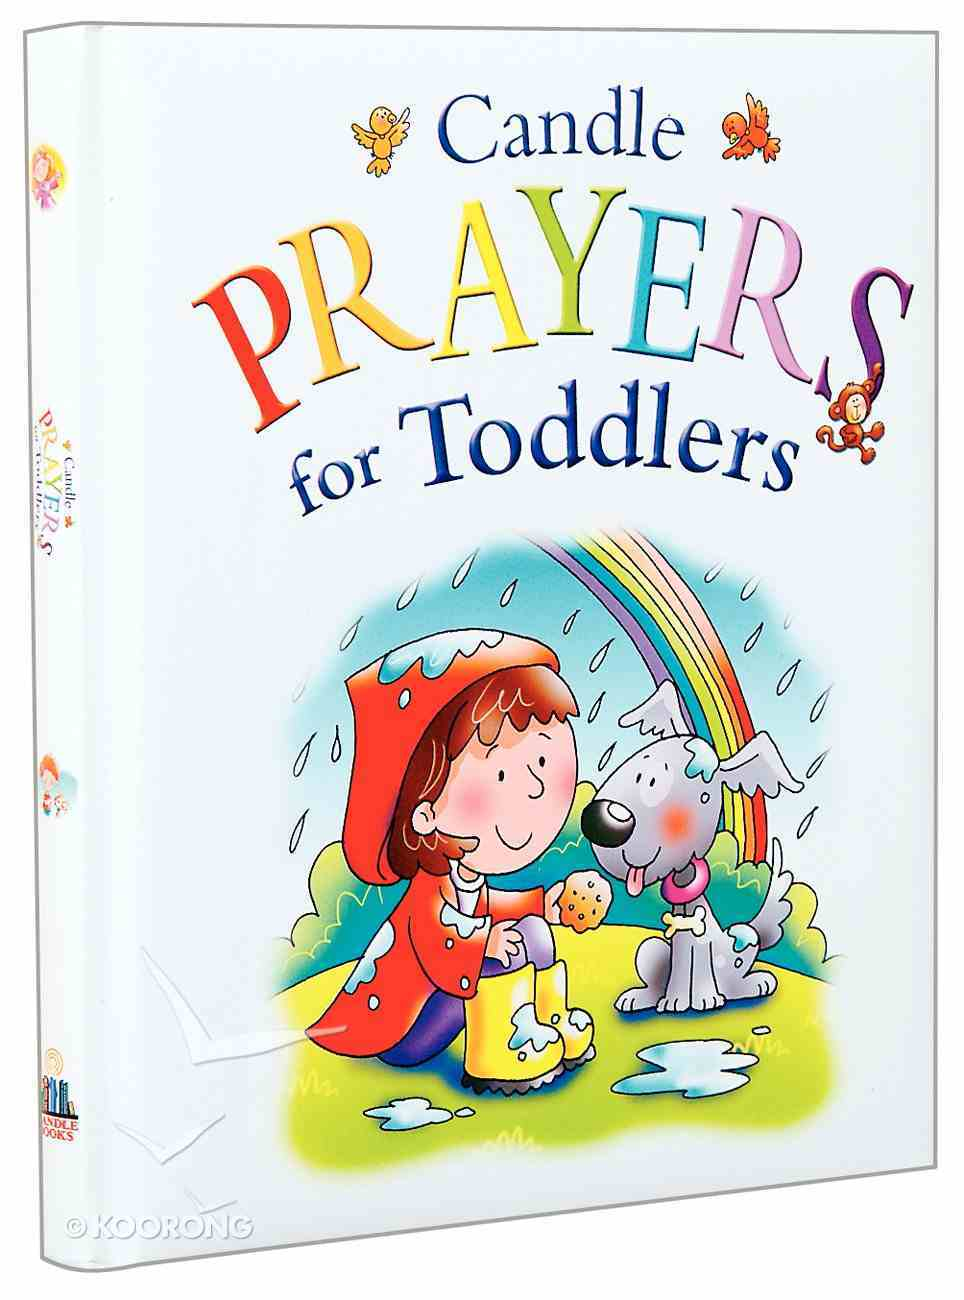 Candle Prayers For Toddlers (Candle Bible For Toddlers Series) Hardback